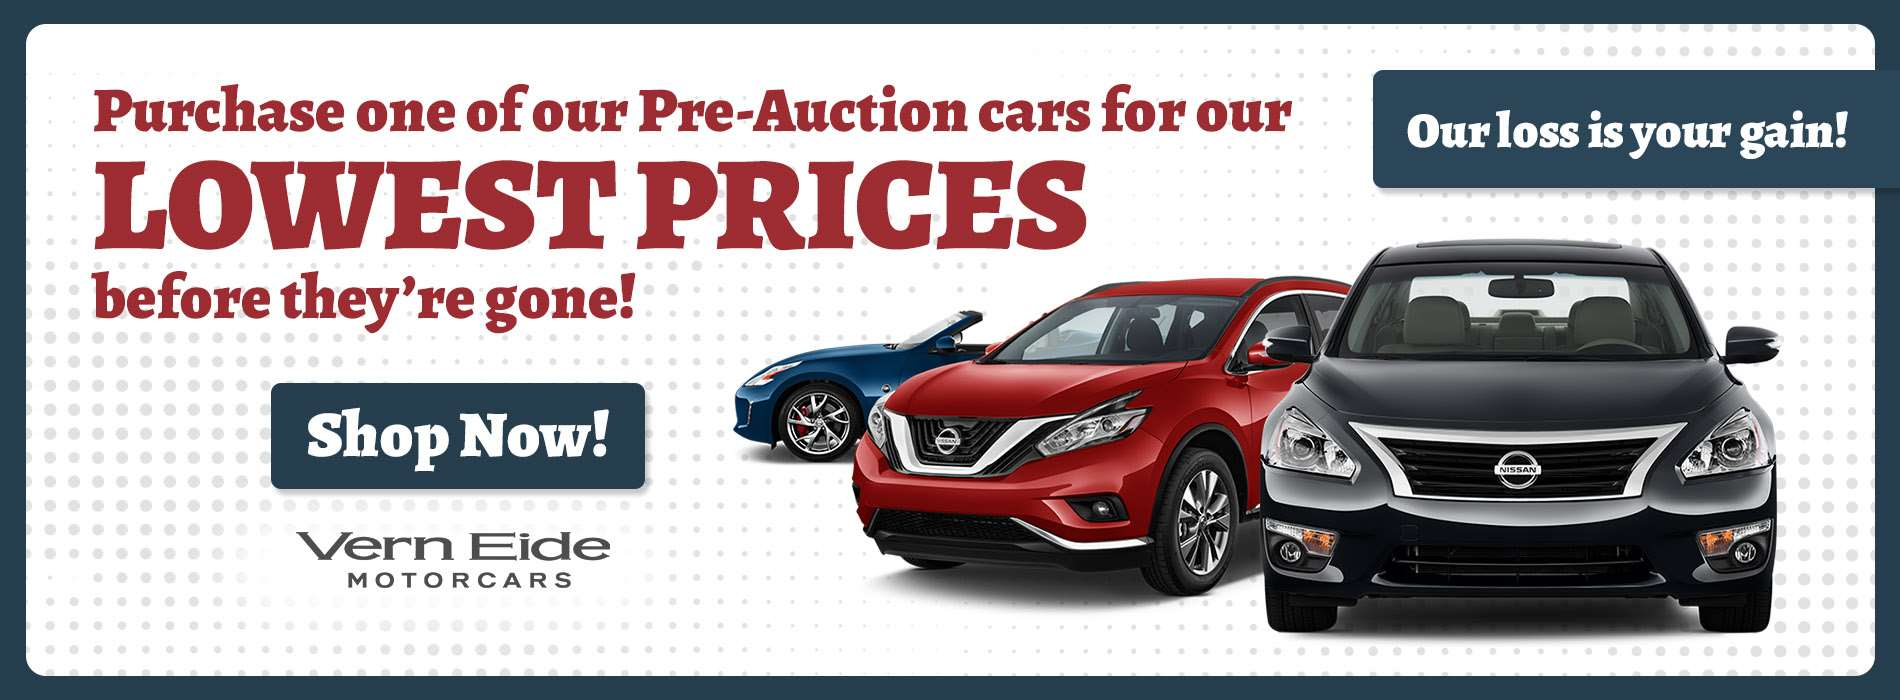 Mitsu - Pre-Auction Cars Shop Now - 2019